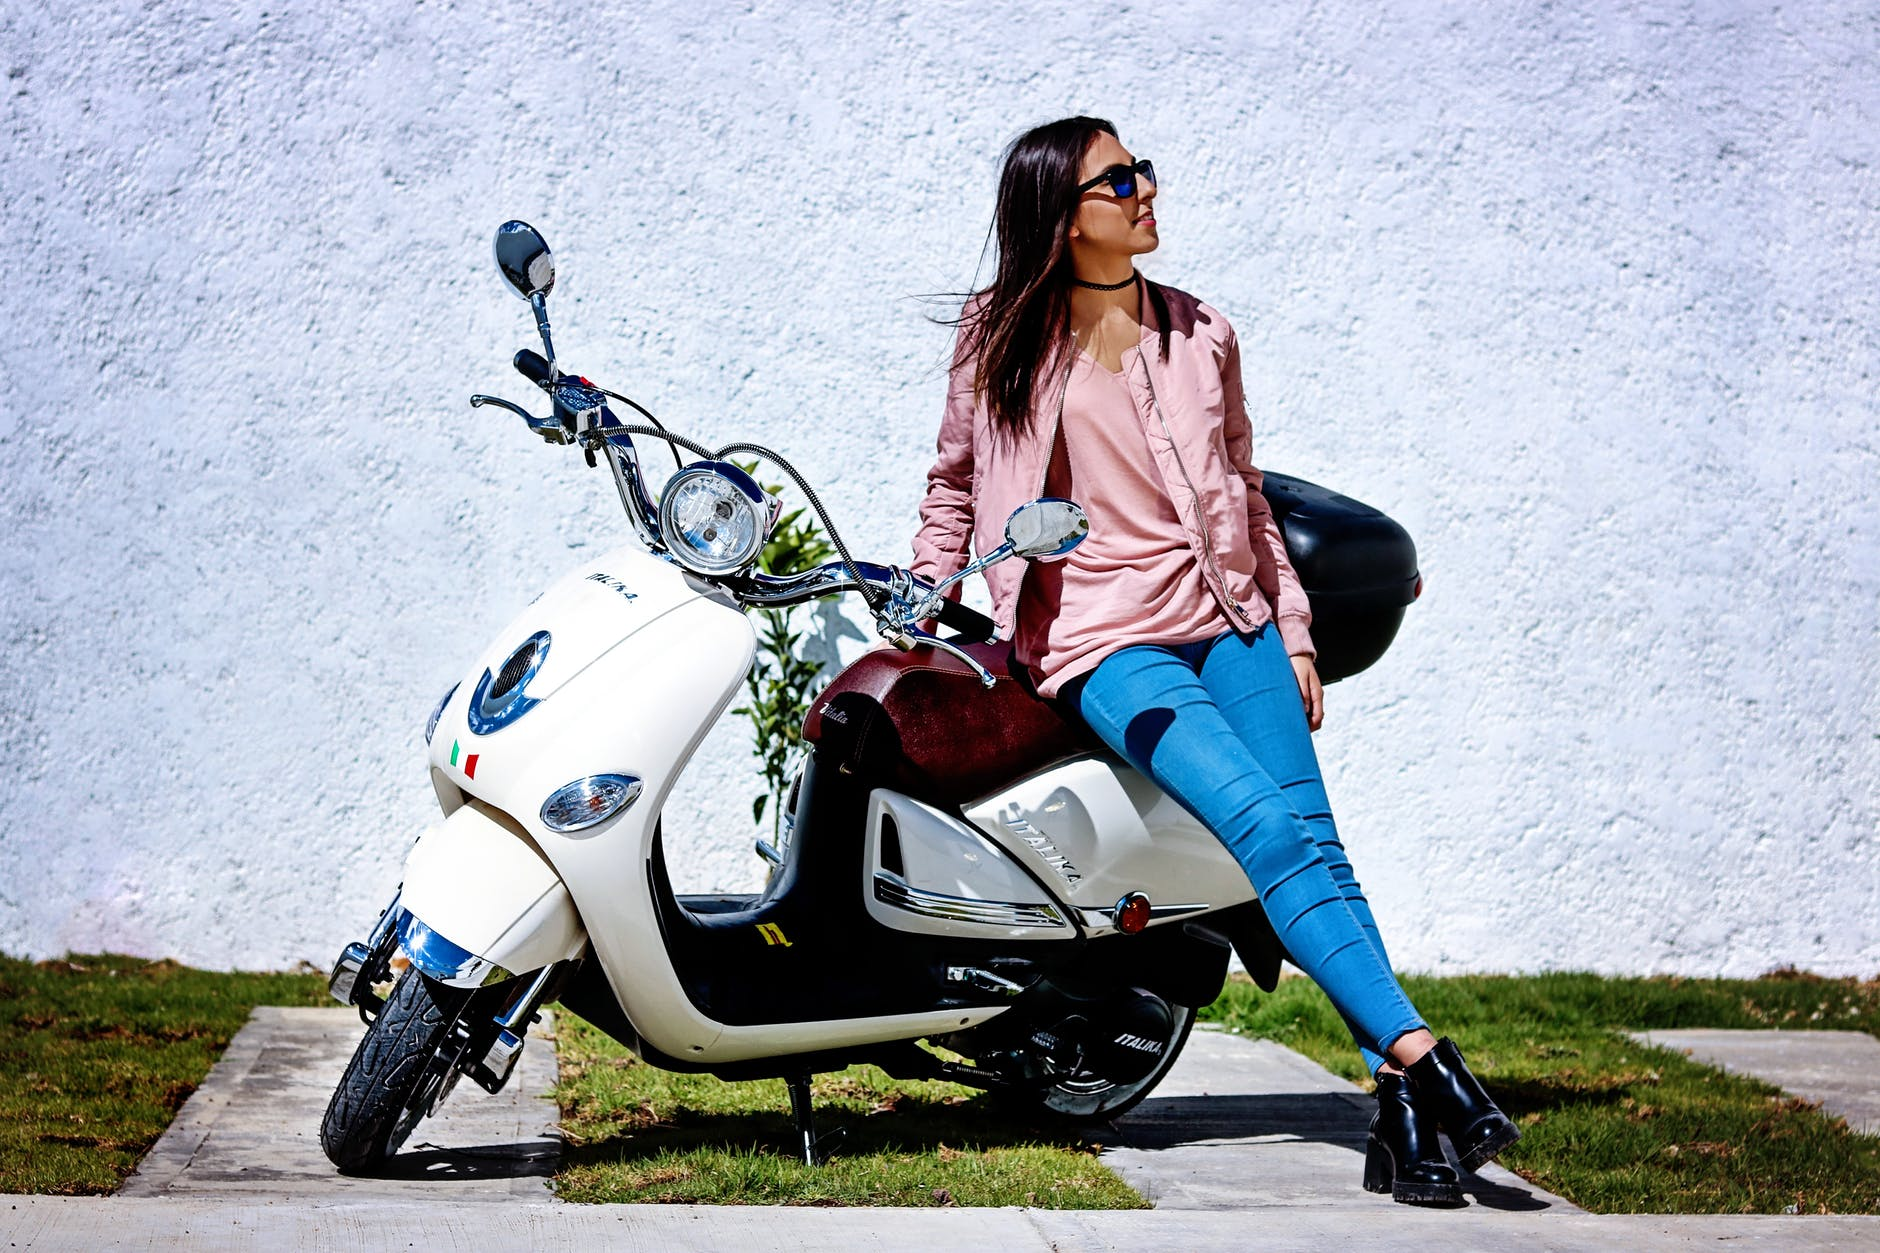 Low Price Scooty with beautifull girl